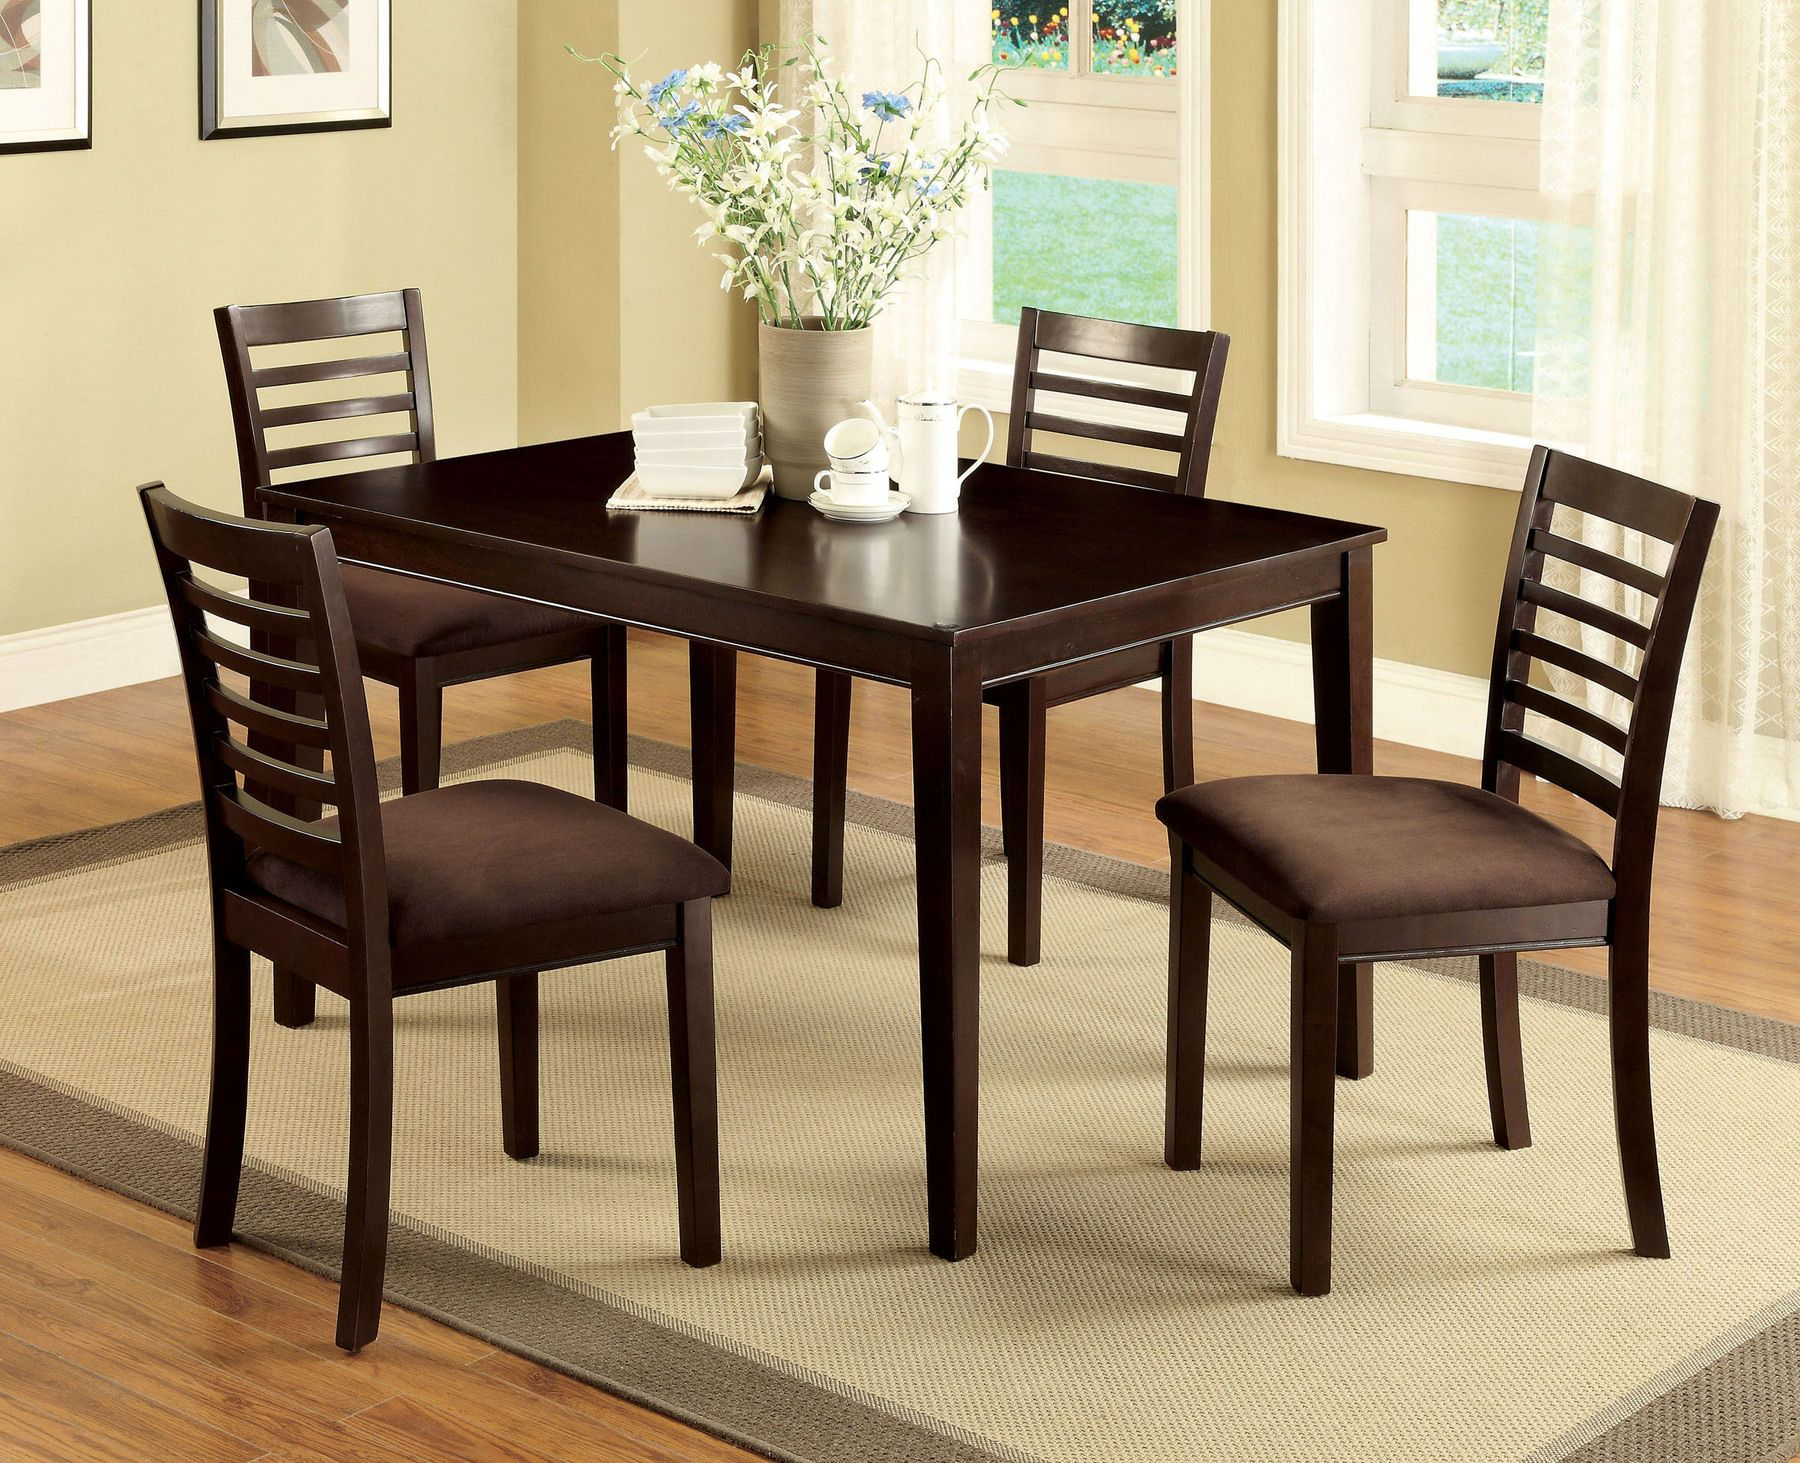 Eaton Table 4 Chairs Dining Room Sets Dining Table Solid